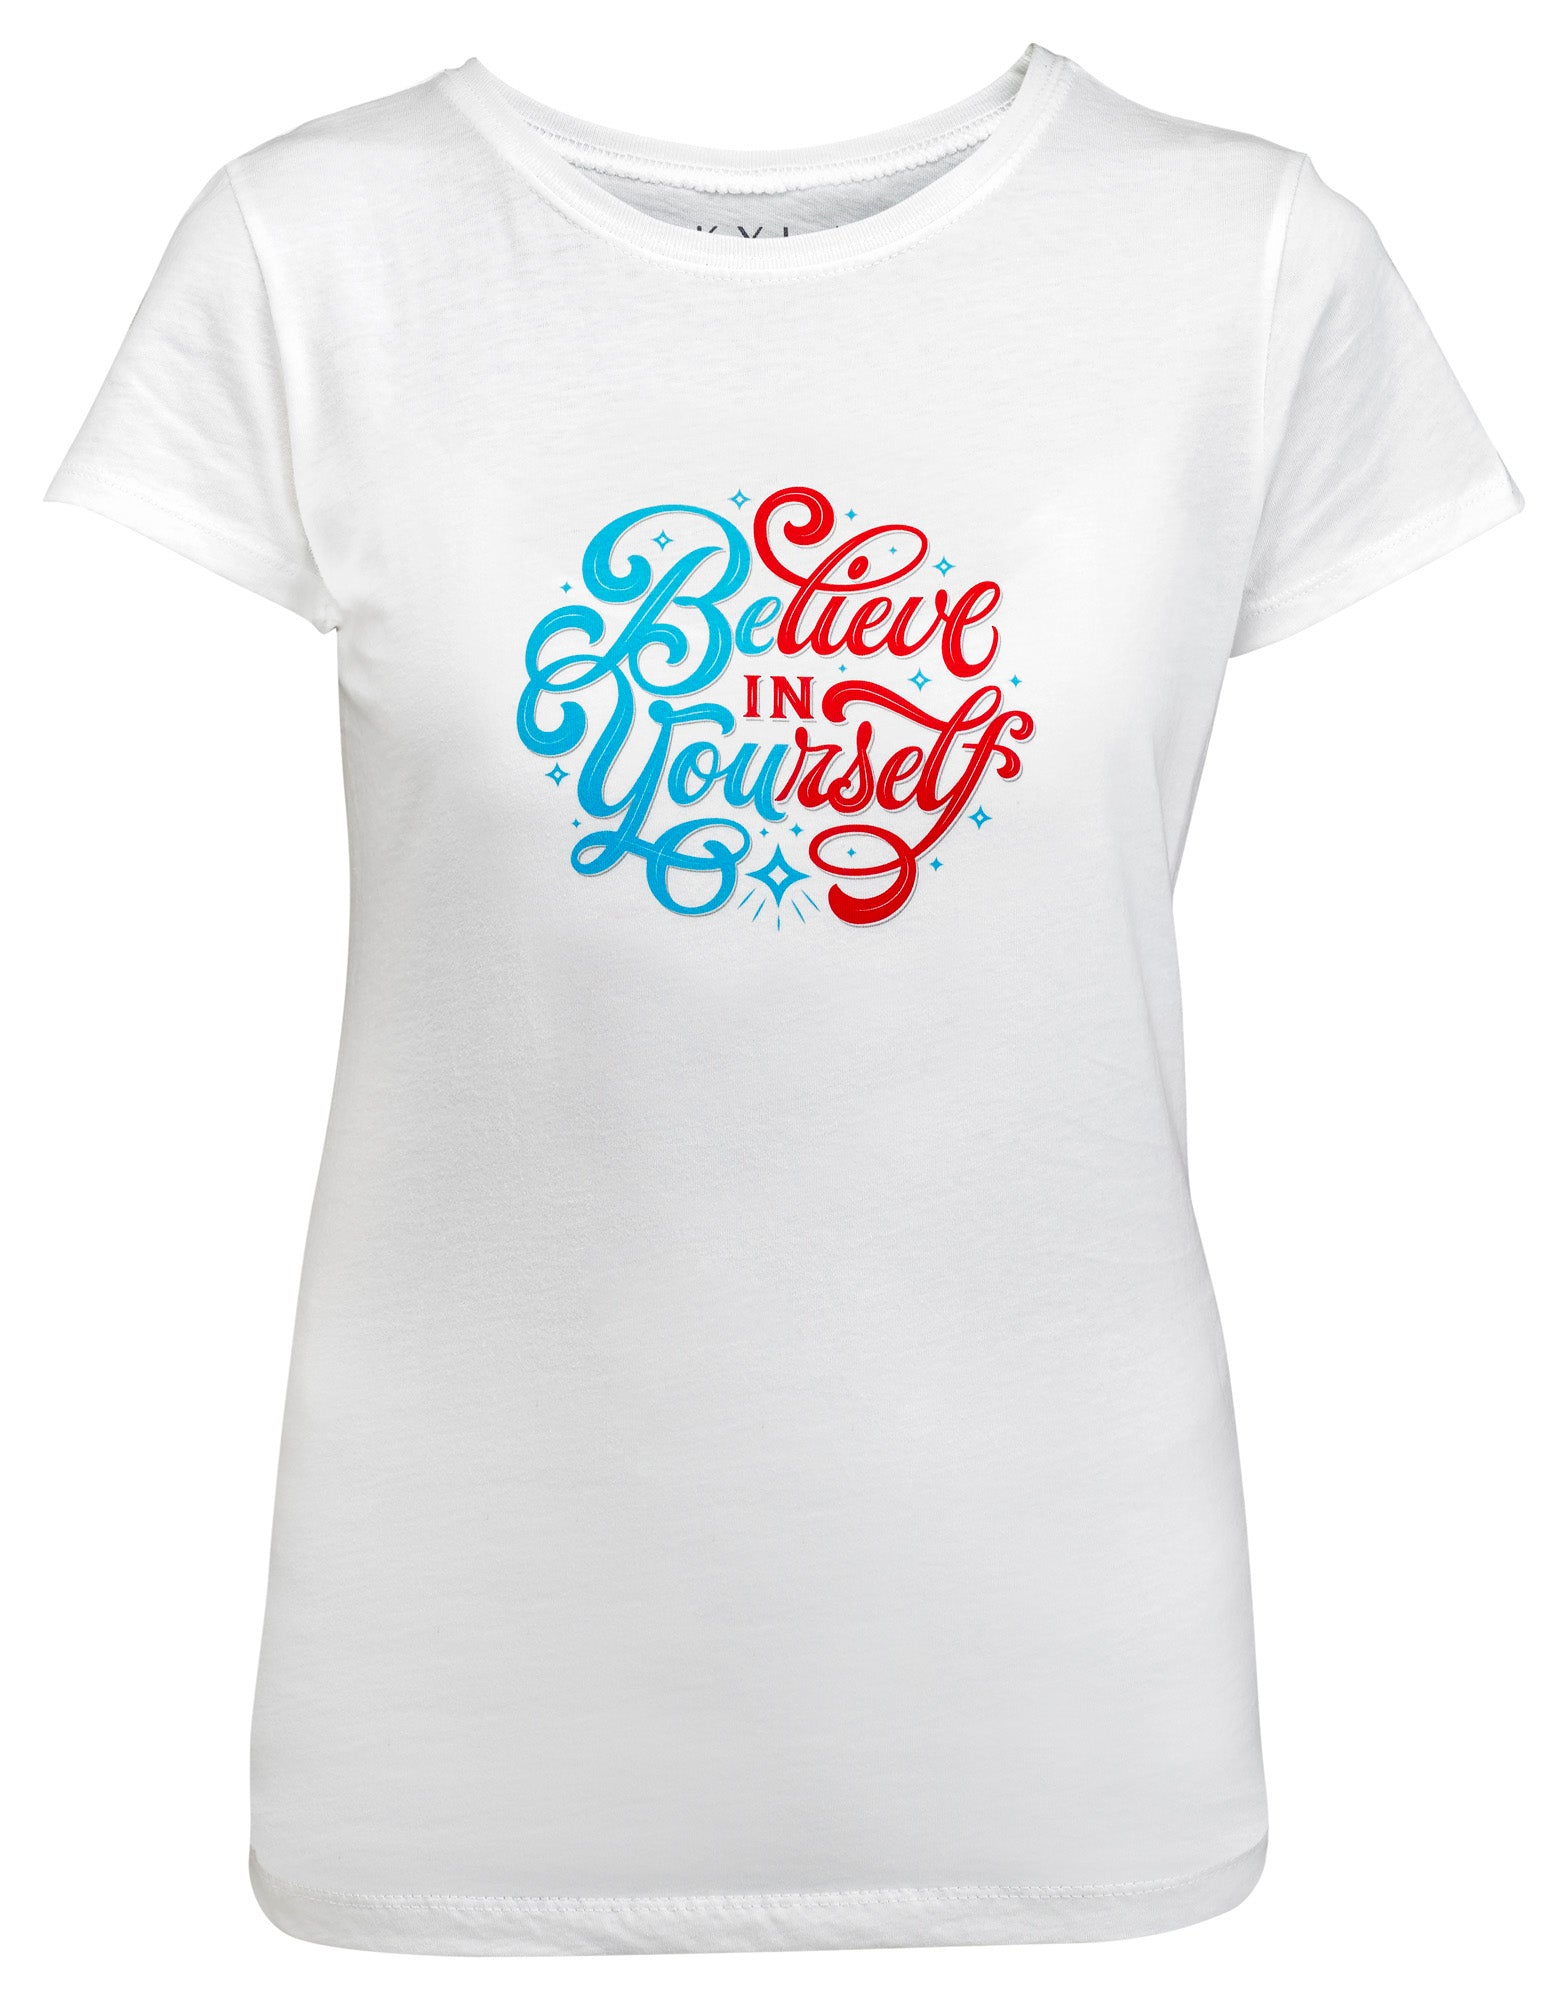 Believe in Yourself Youth Graphic Tee - White